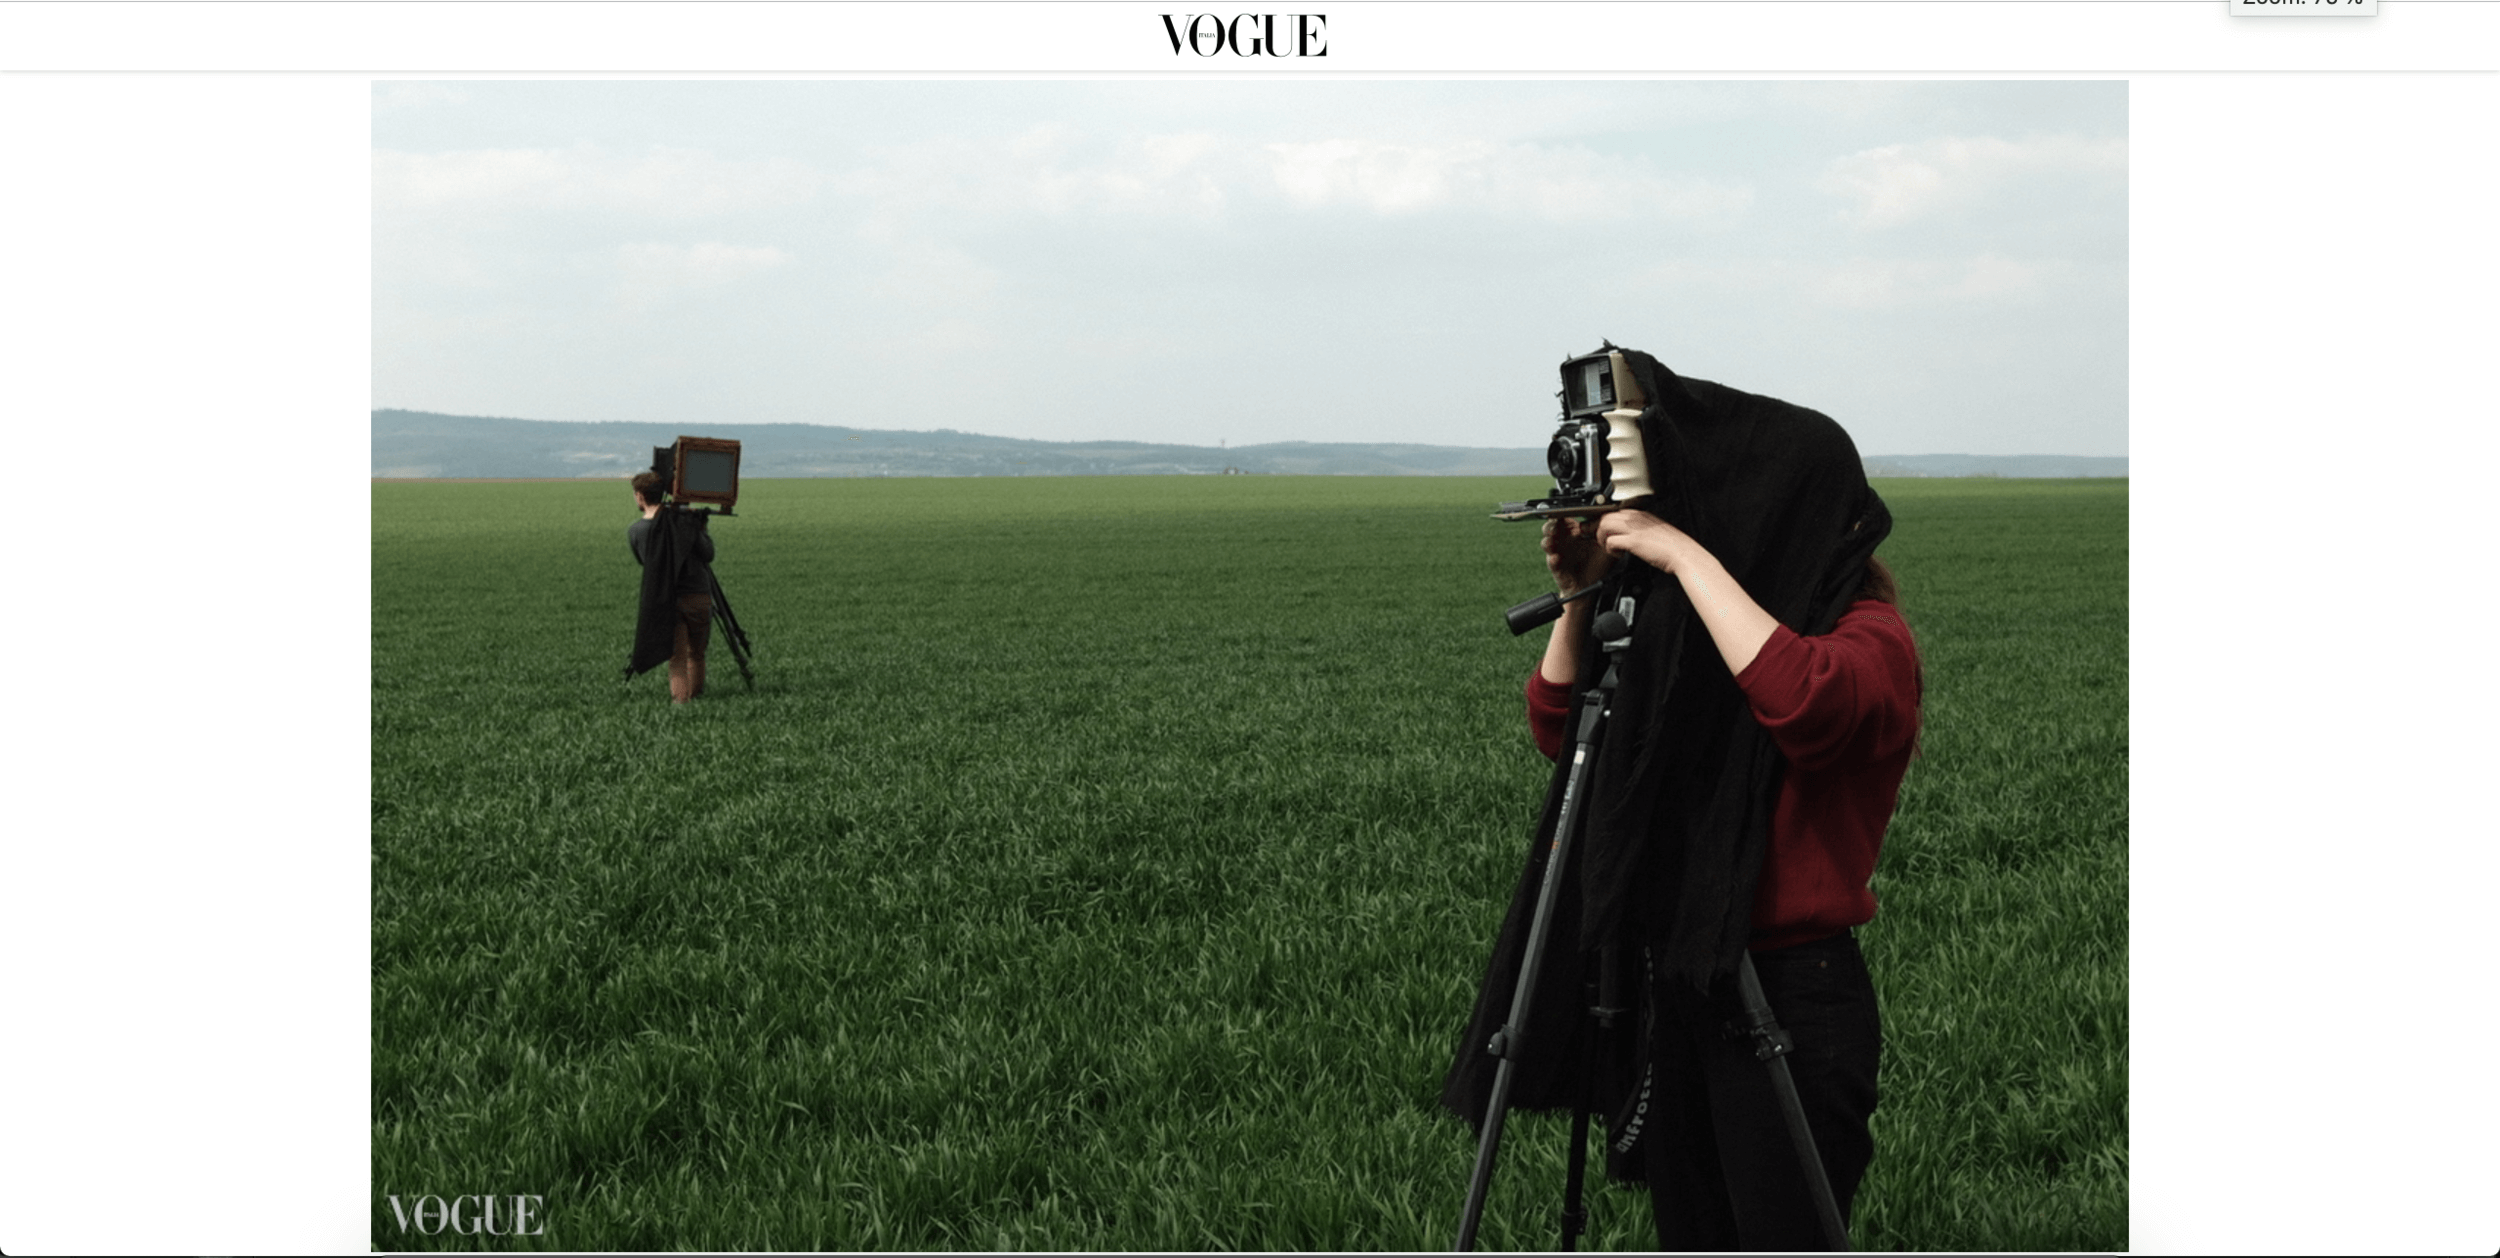 Cameraman on Photo Vogue Italy